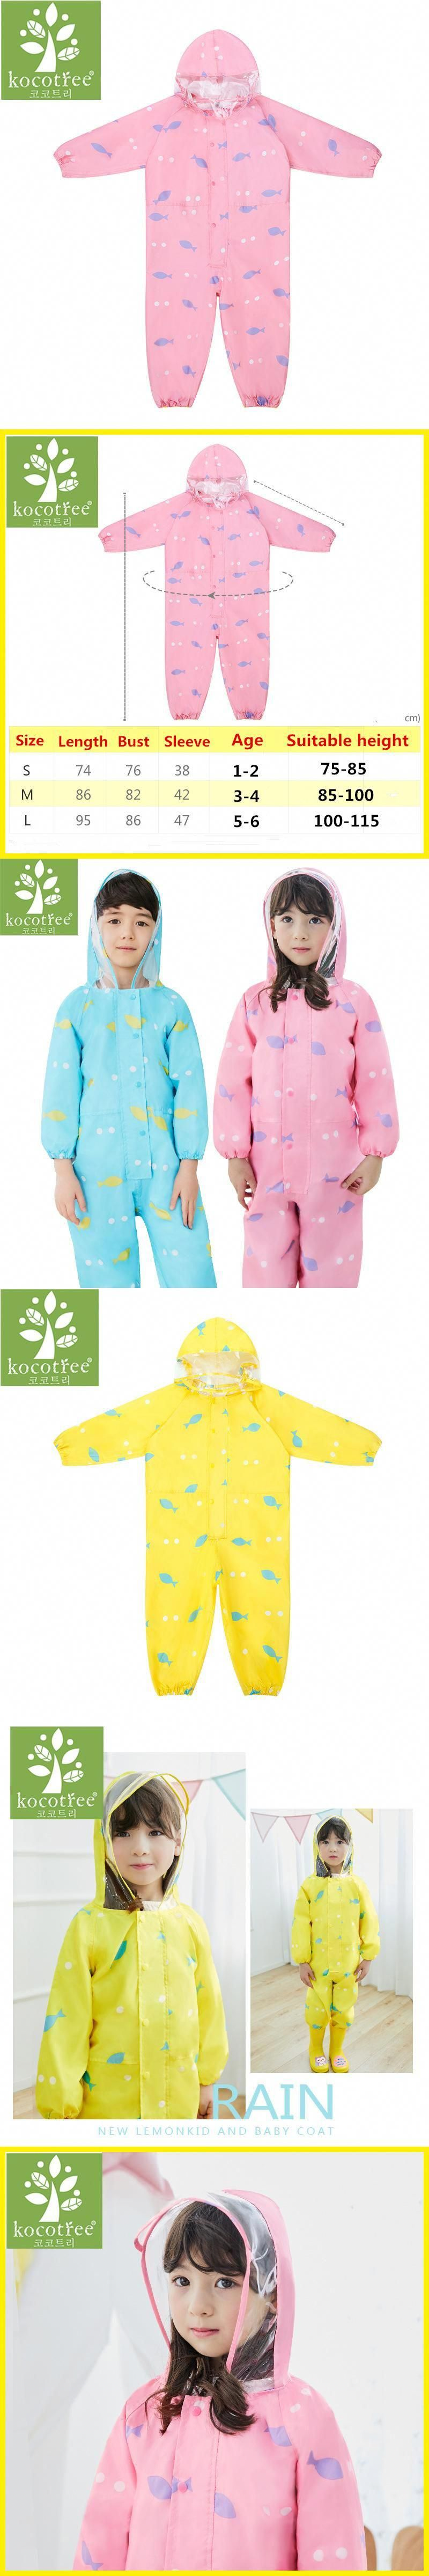 a681bfb81 1-6 Years Old Children Raincoat Kids Jumpsuit Boys Girls One-Piece ...